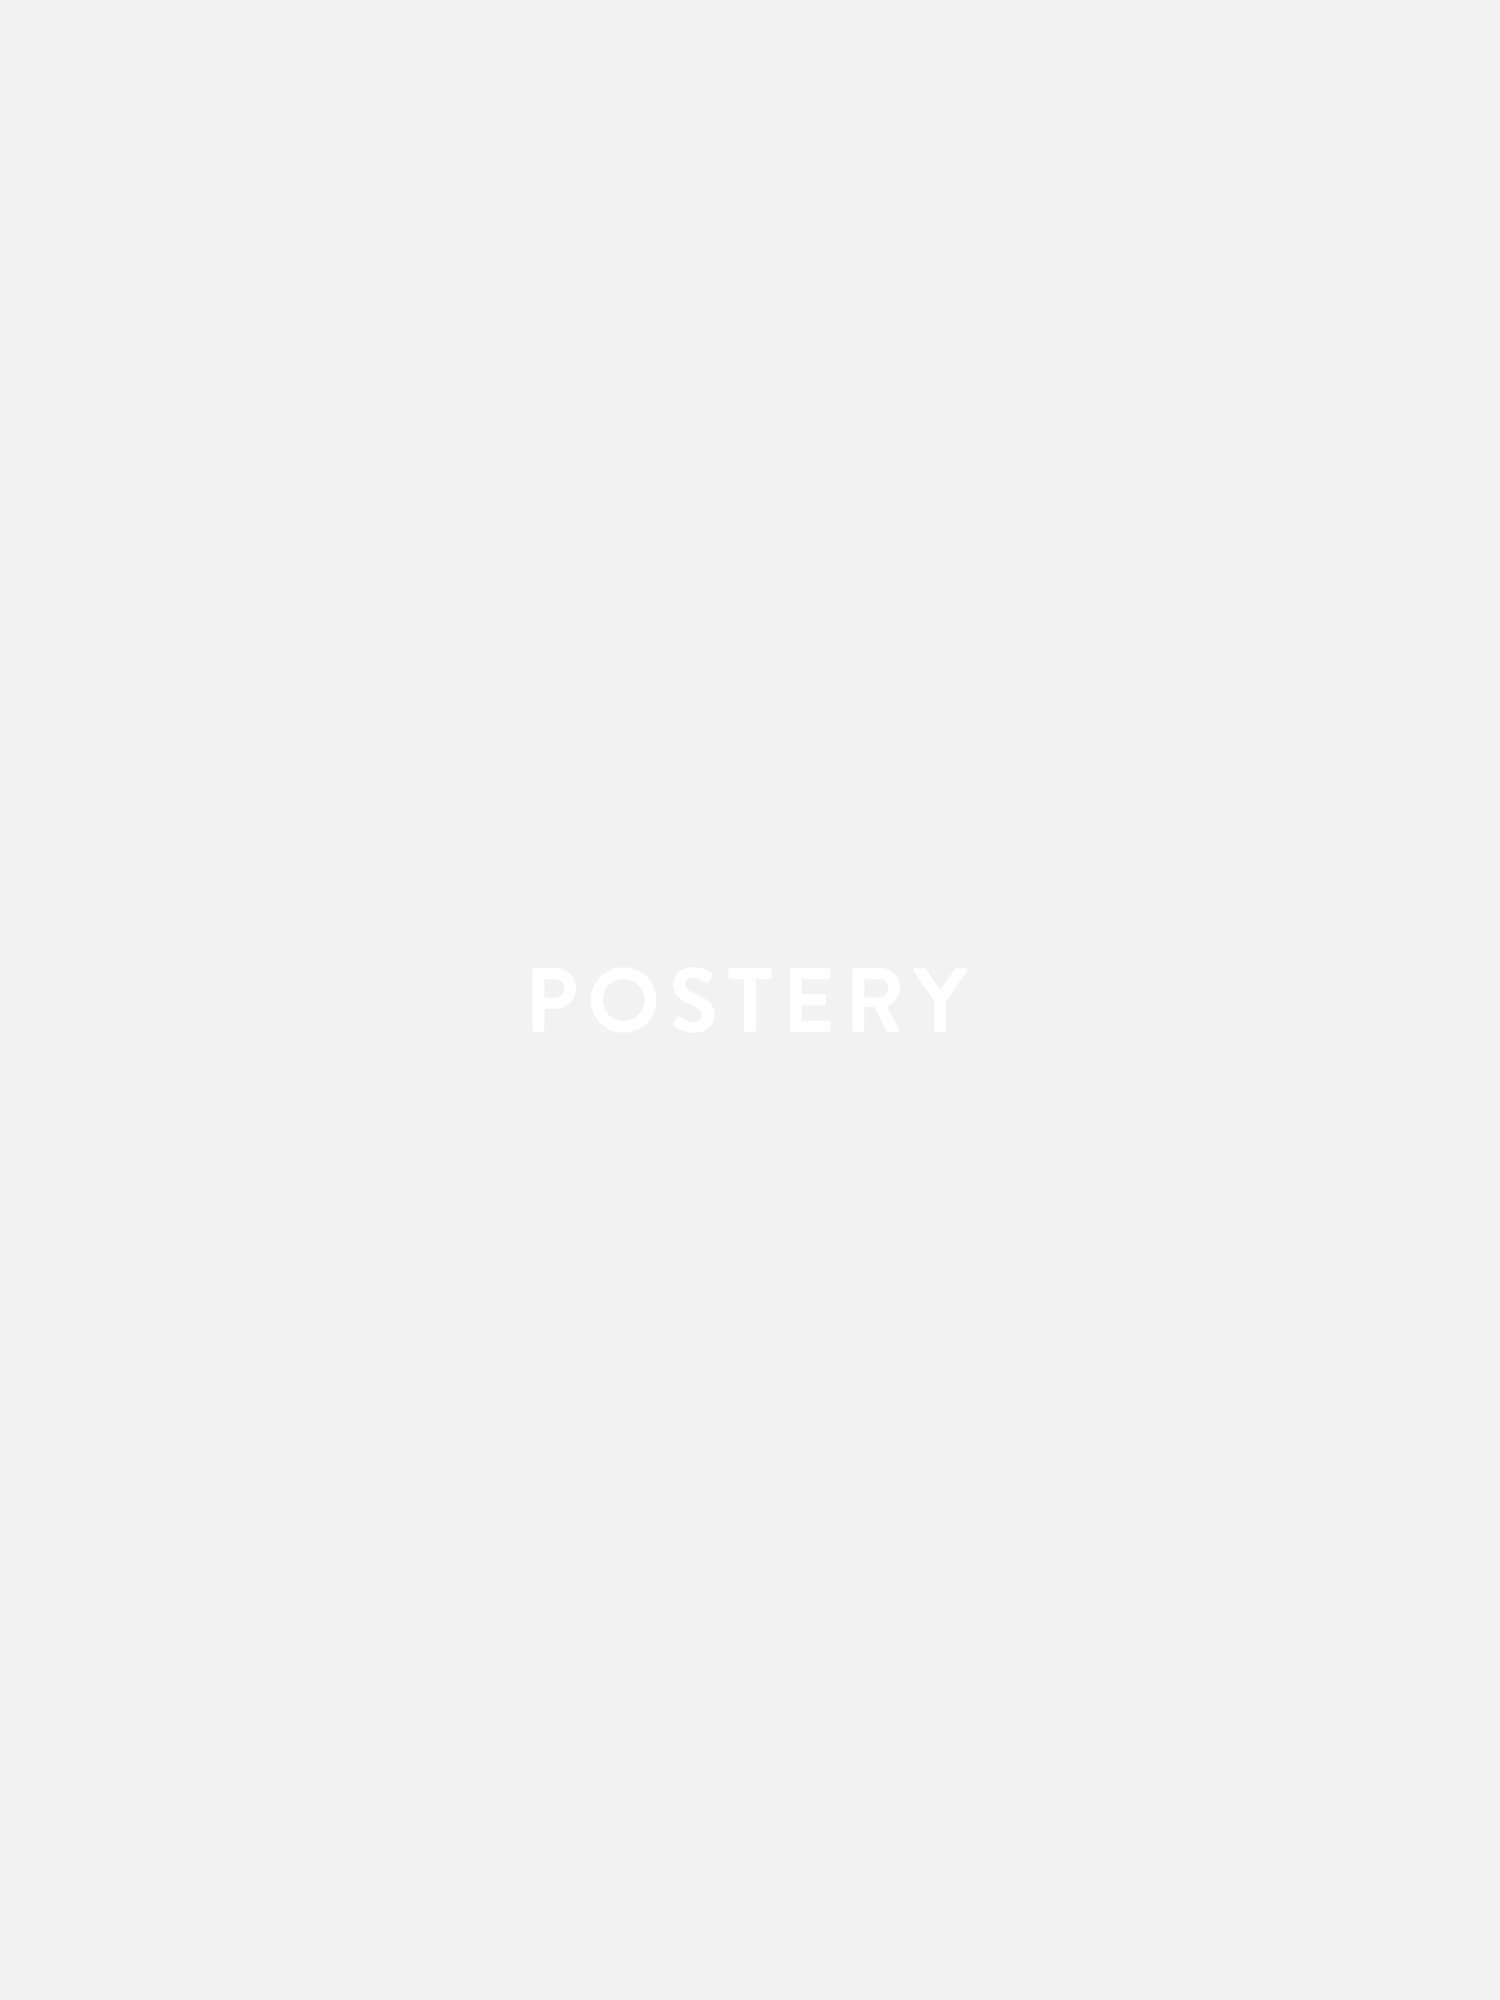 Brown New York Facade Poster